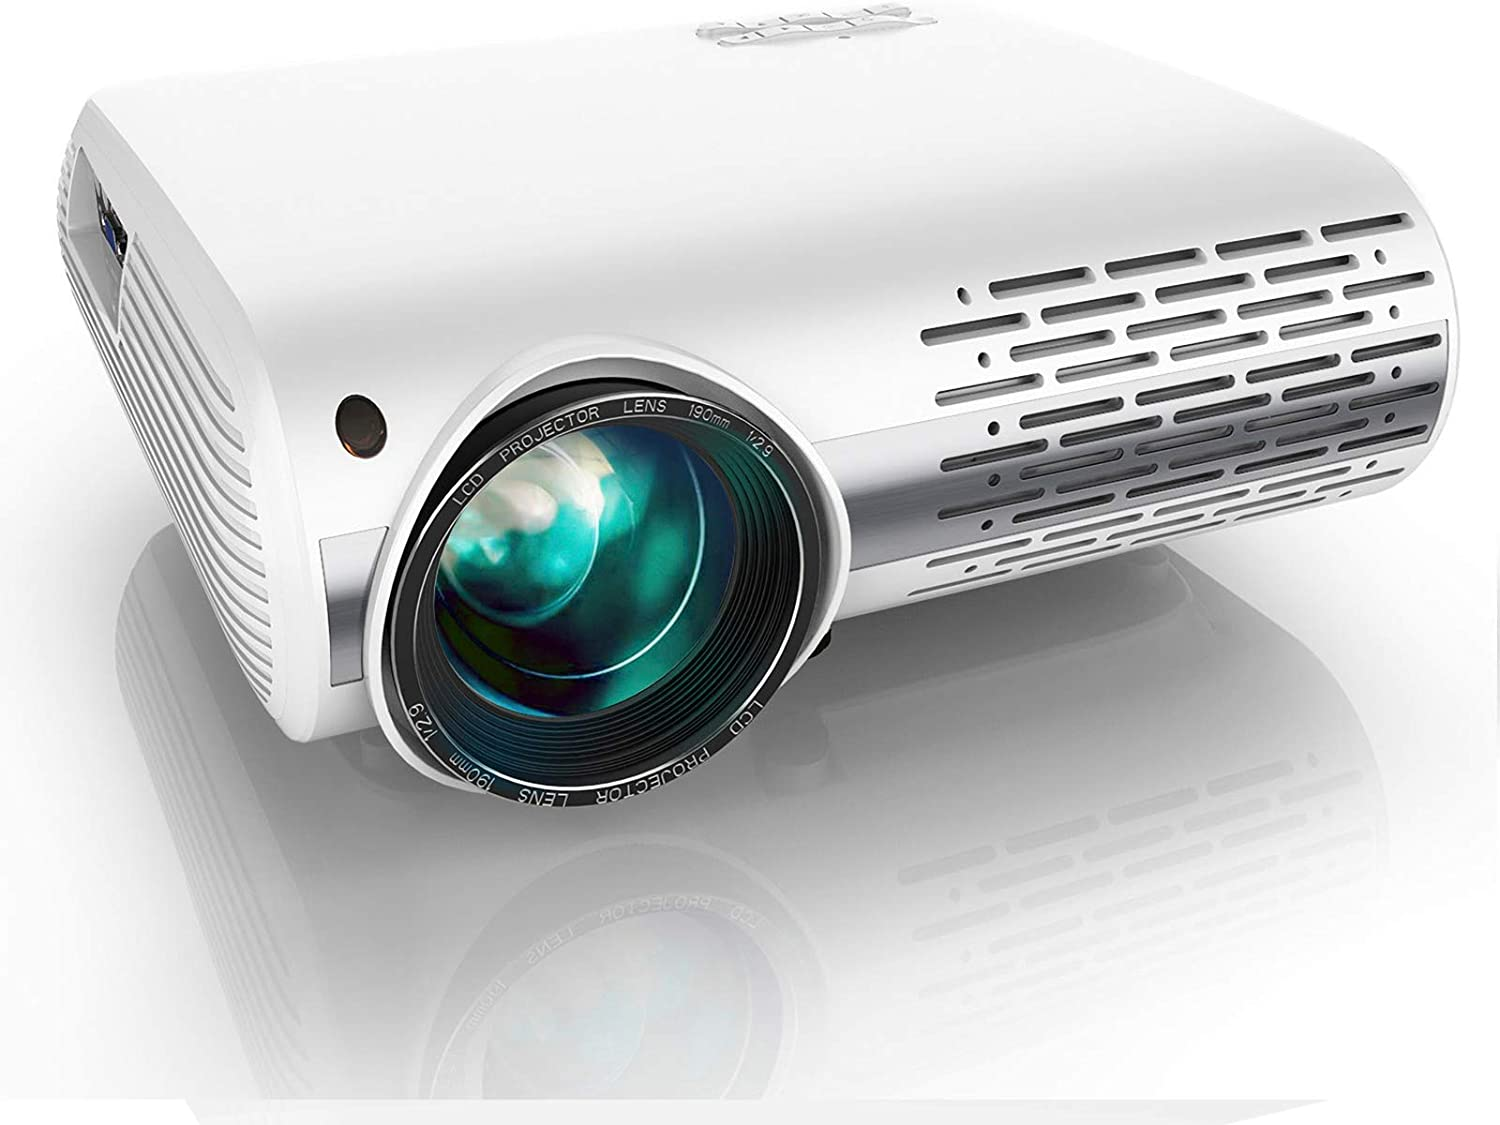 YABER Y30 Native 1080P budget Projector for gaming